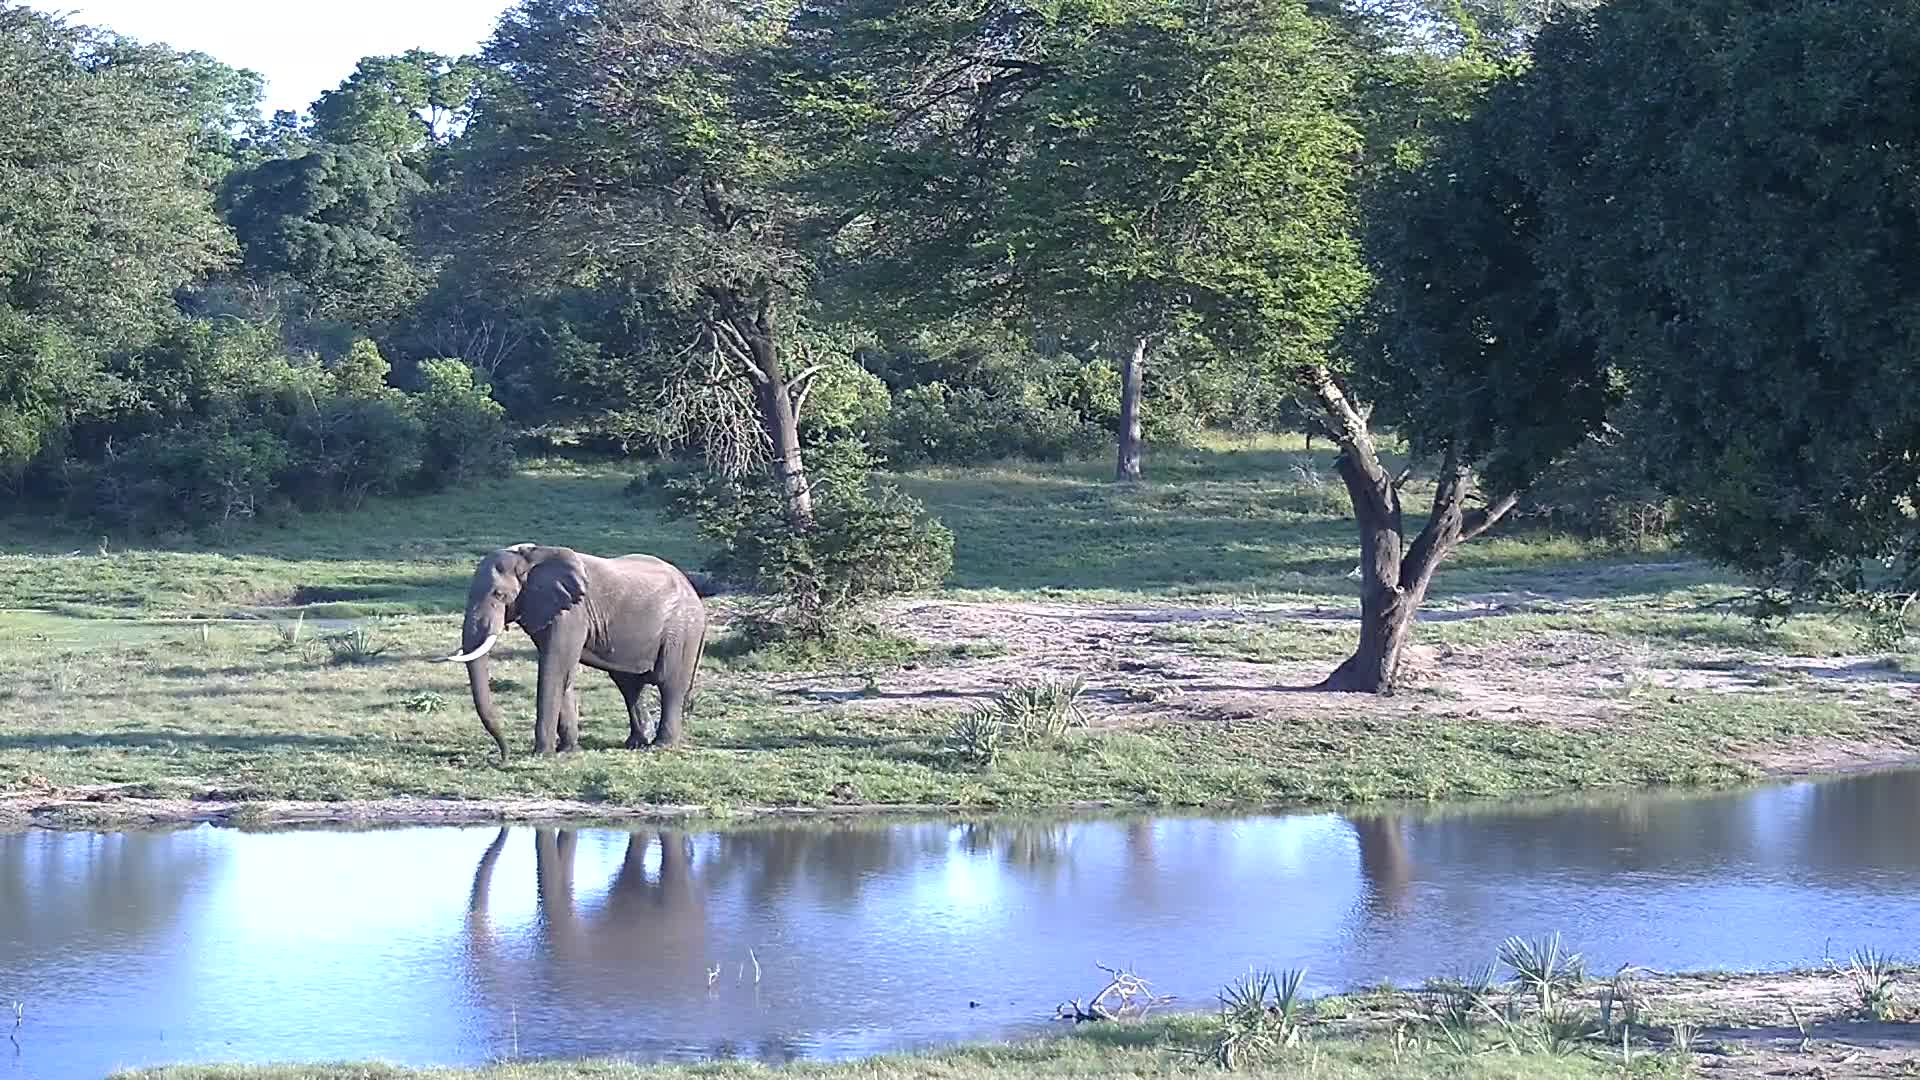 VIDEO:  Elephant walking past the waterhole